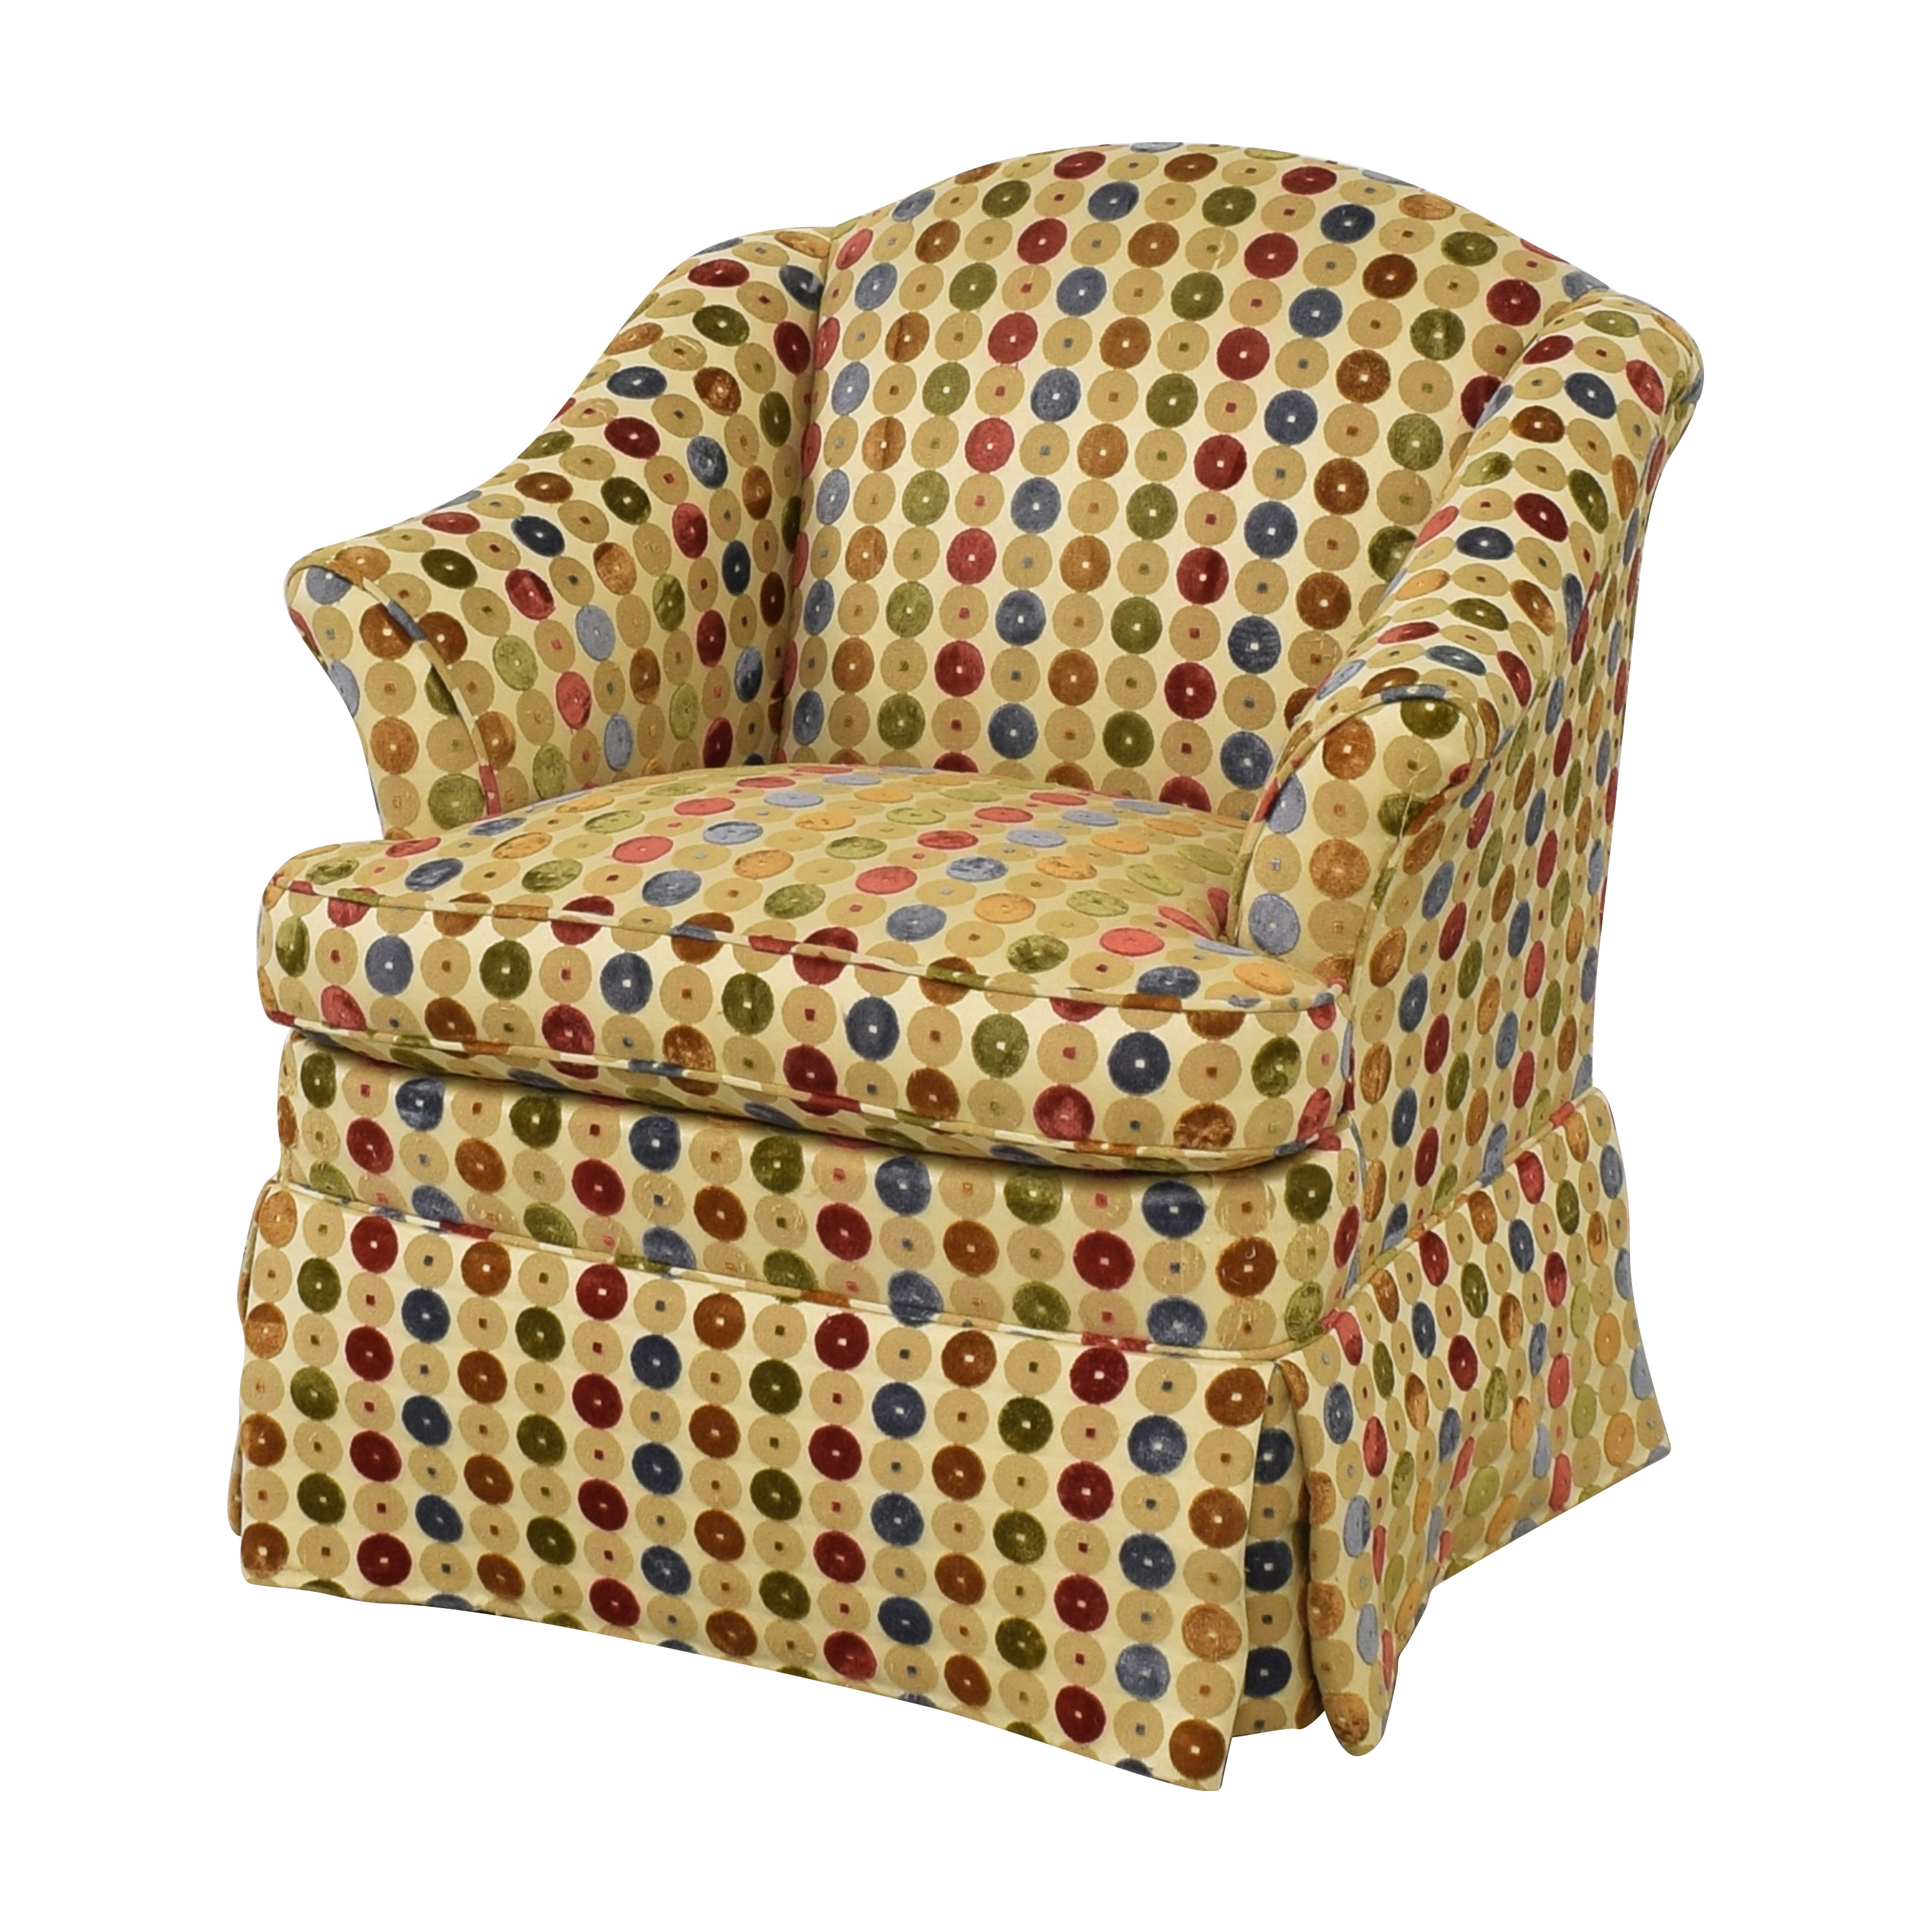 Charles Stewart Company Charles Stewart Company Swivel Chair second hand